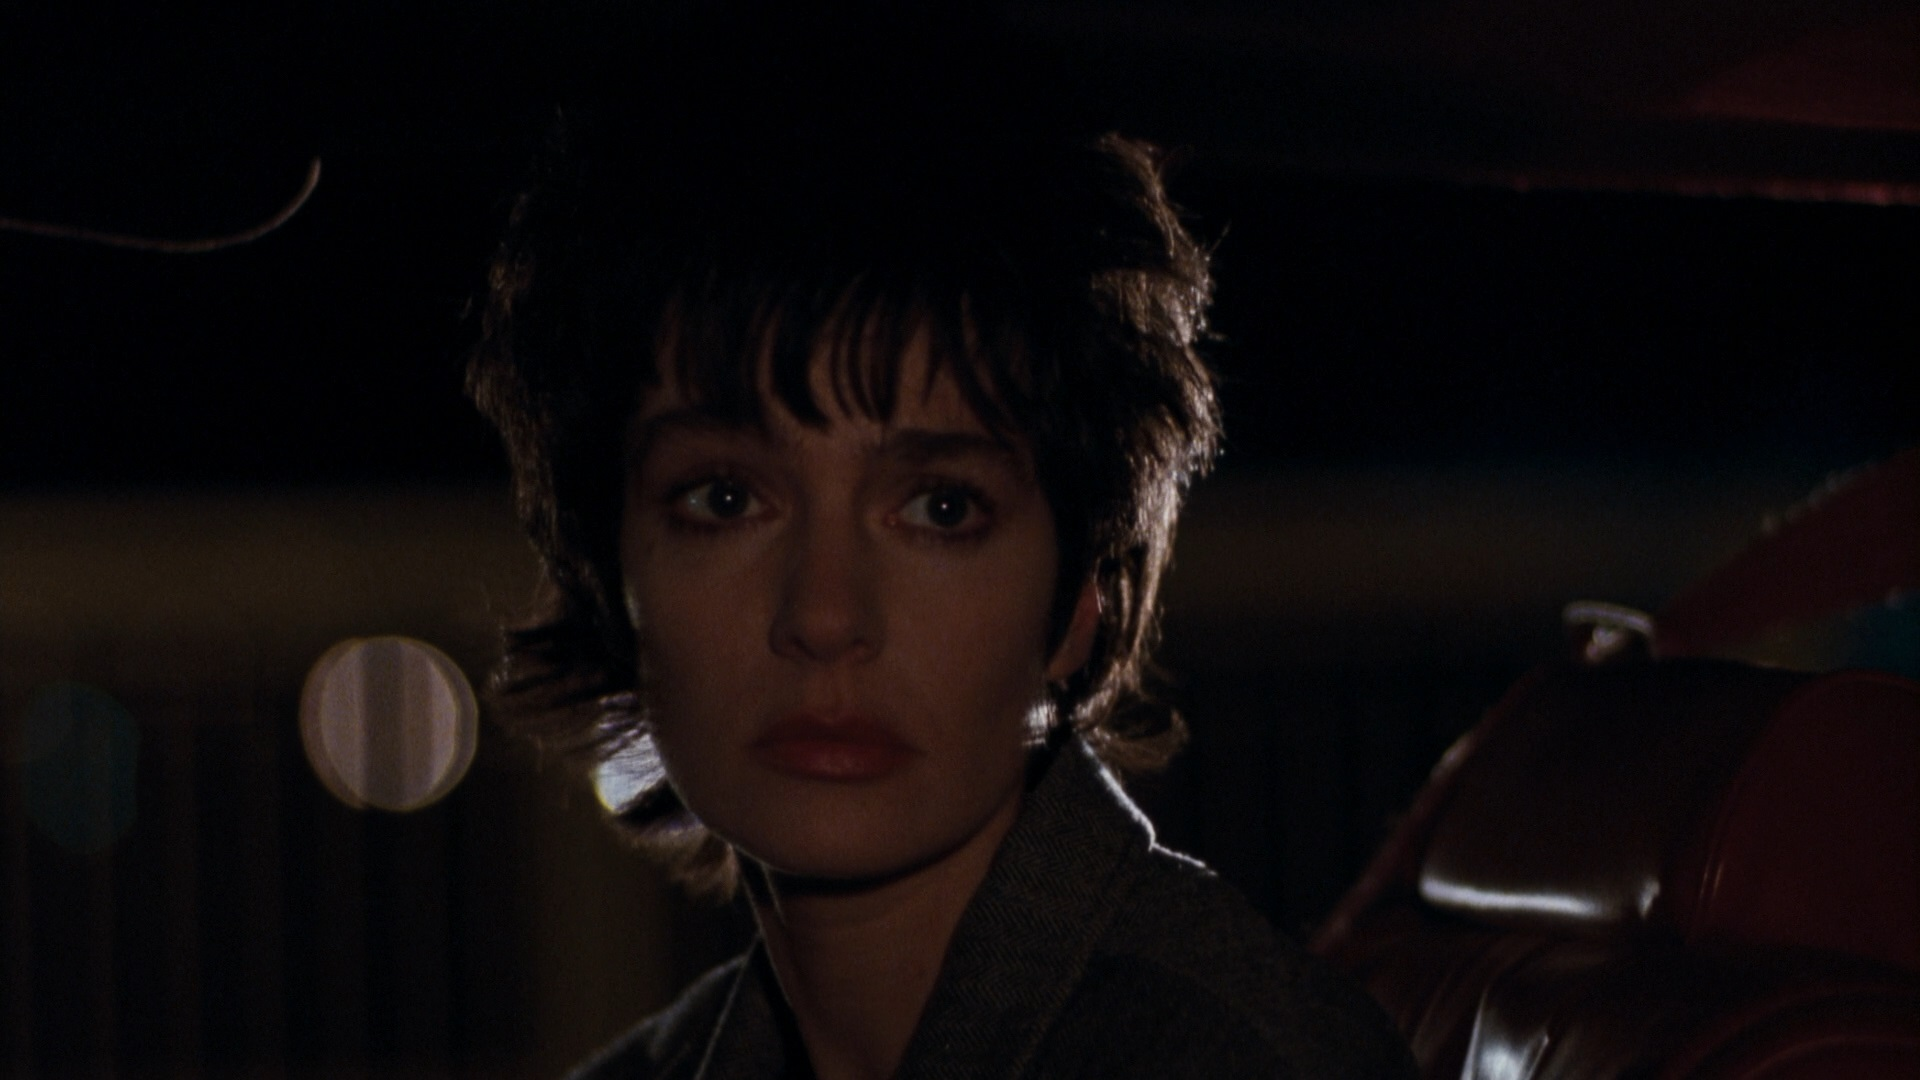 Anne Parillaud as the French vampire Marie in Innocent Blood (1992)